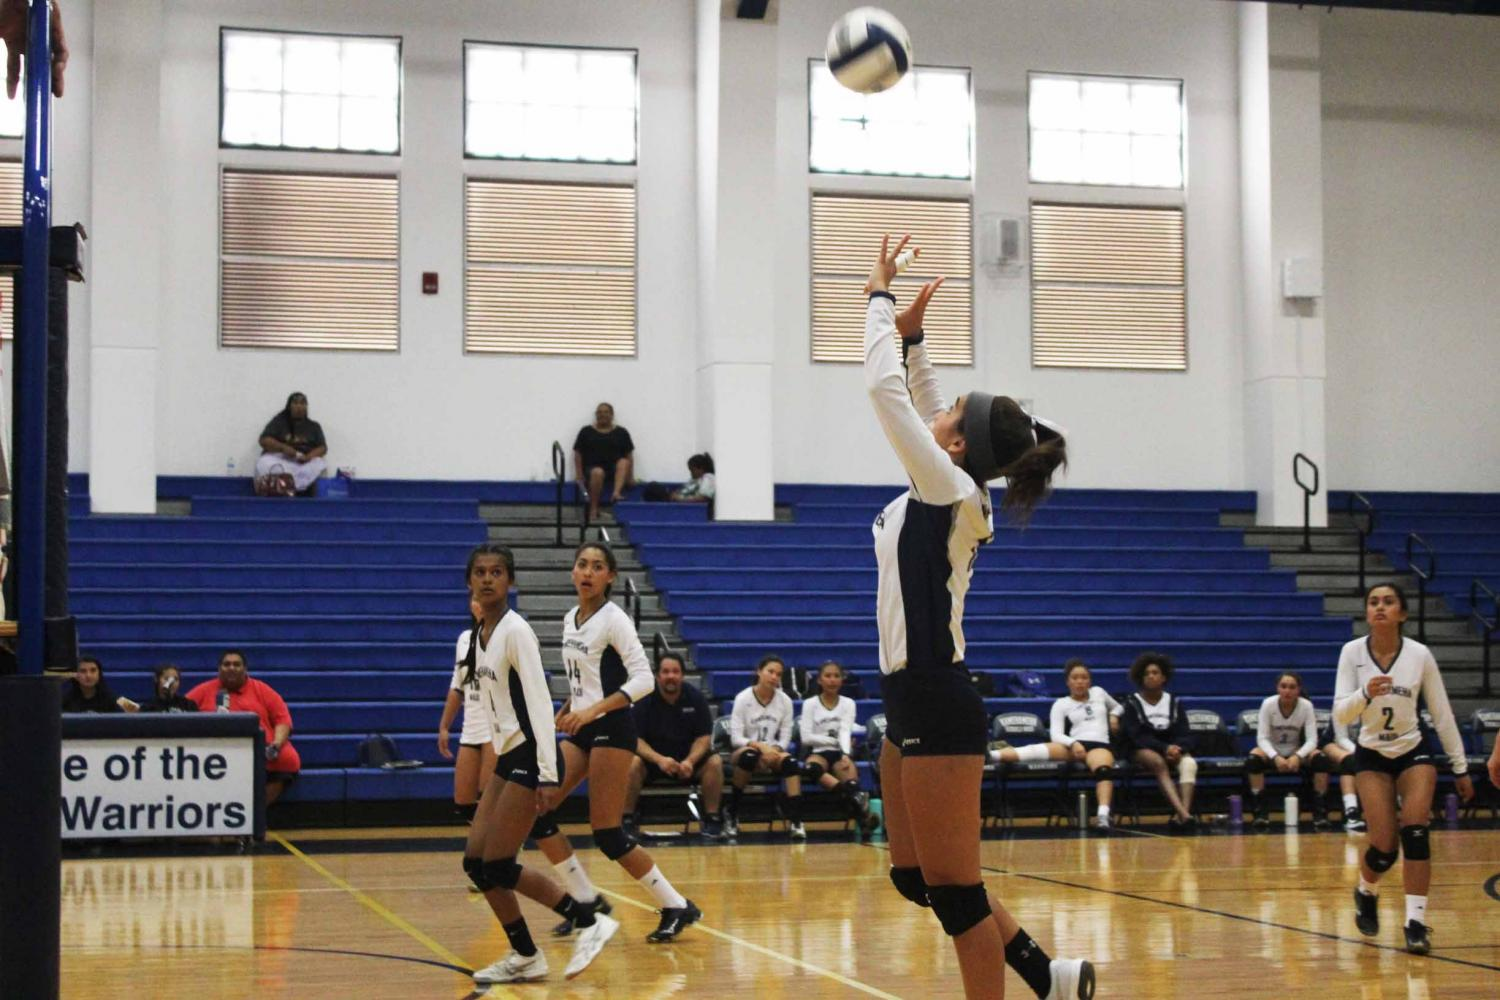 Freshman Laʻakeaokalani Awai sets the ball over the net. The jv girls volleyball Warriors won 2-1 over Maui High on Sept. 28 at Kaʻulaheanuiokamoku Gymnasium.